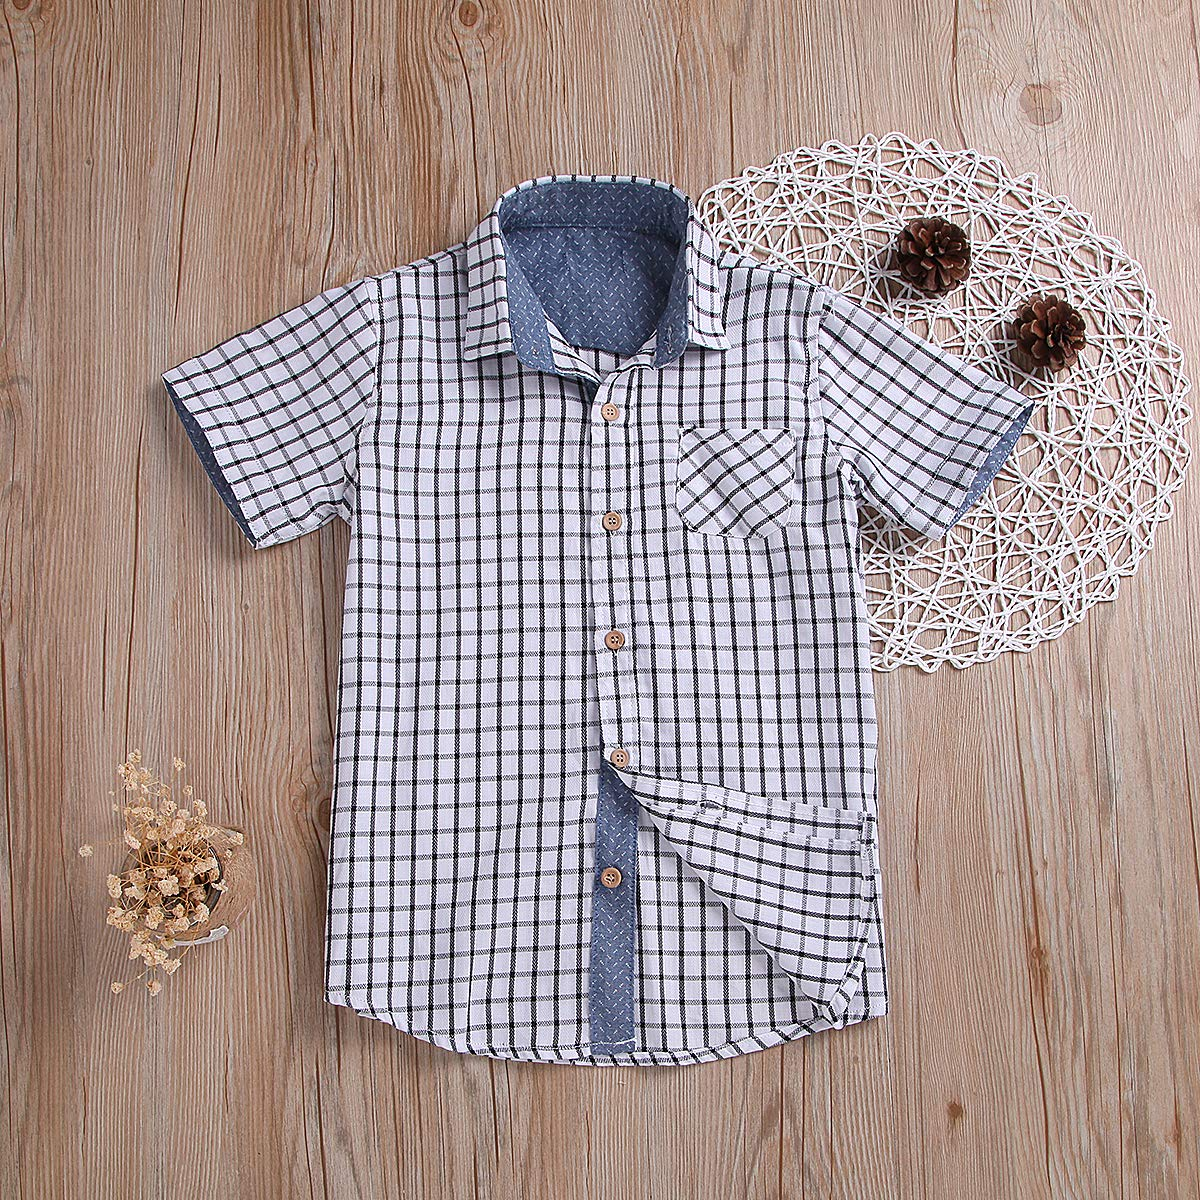 Turuste Fashion Toddler Kids Boys Button Down Shirts Short Sleeve White Plaid Shirts with Pocket Party School Summer Clothes